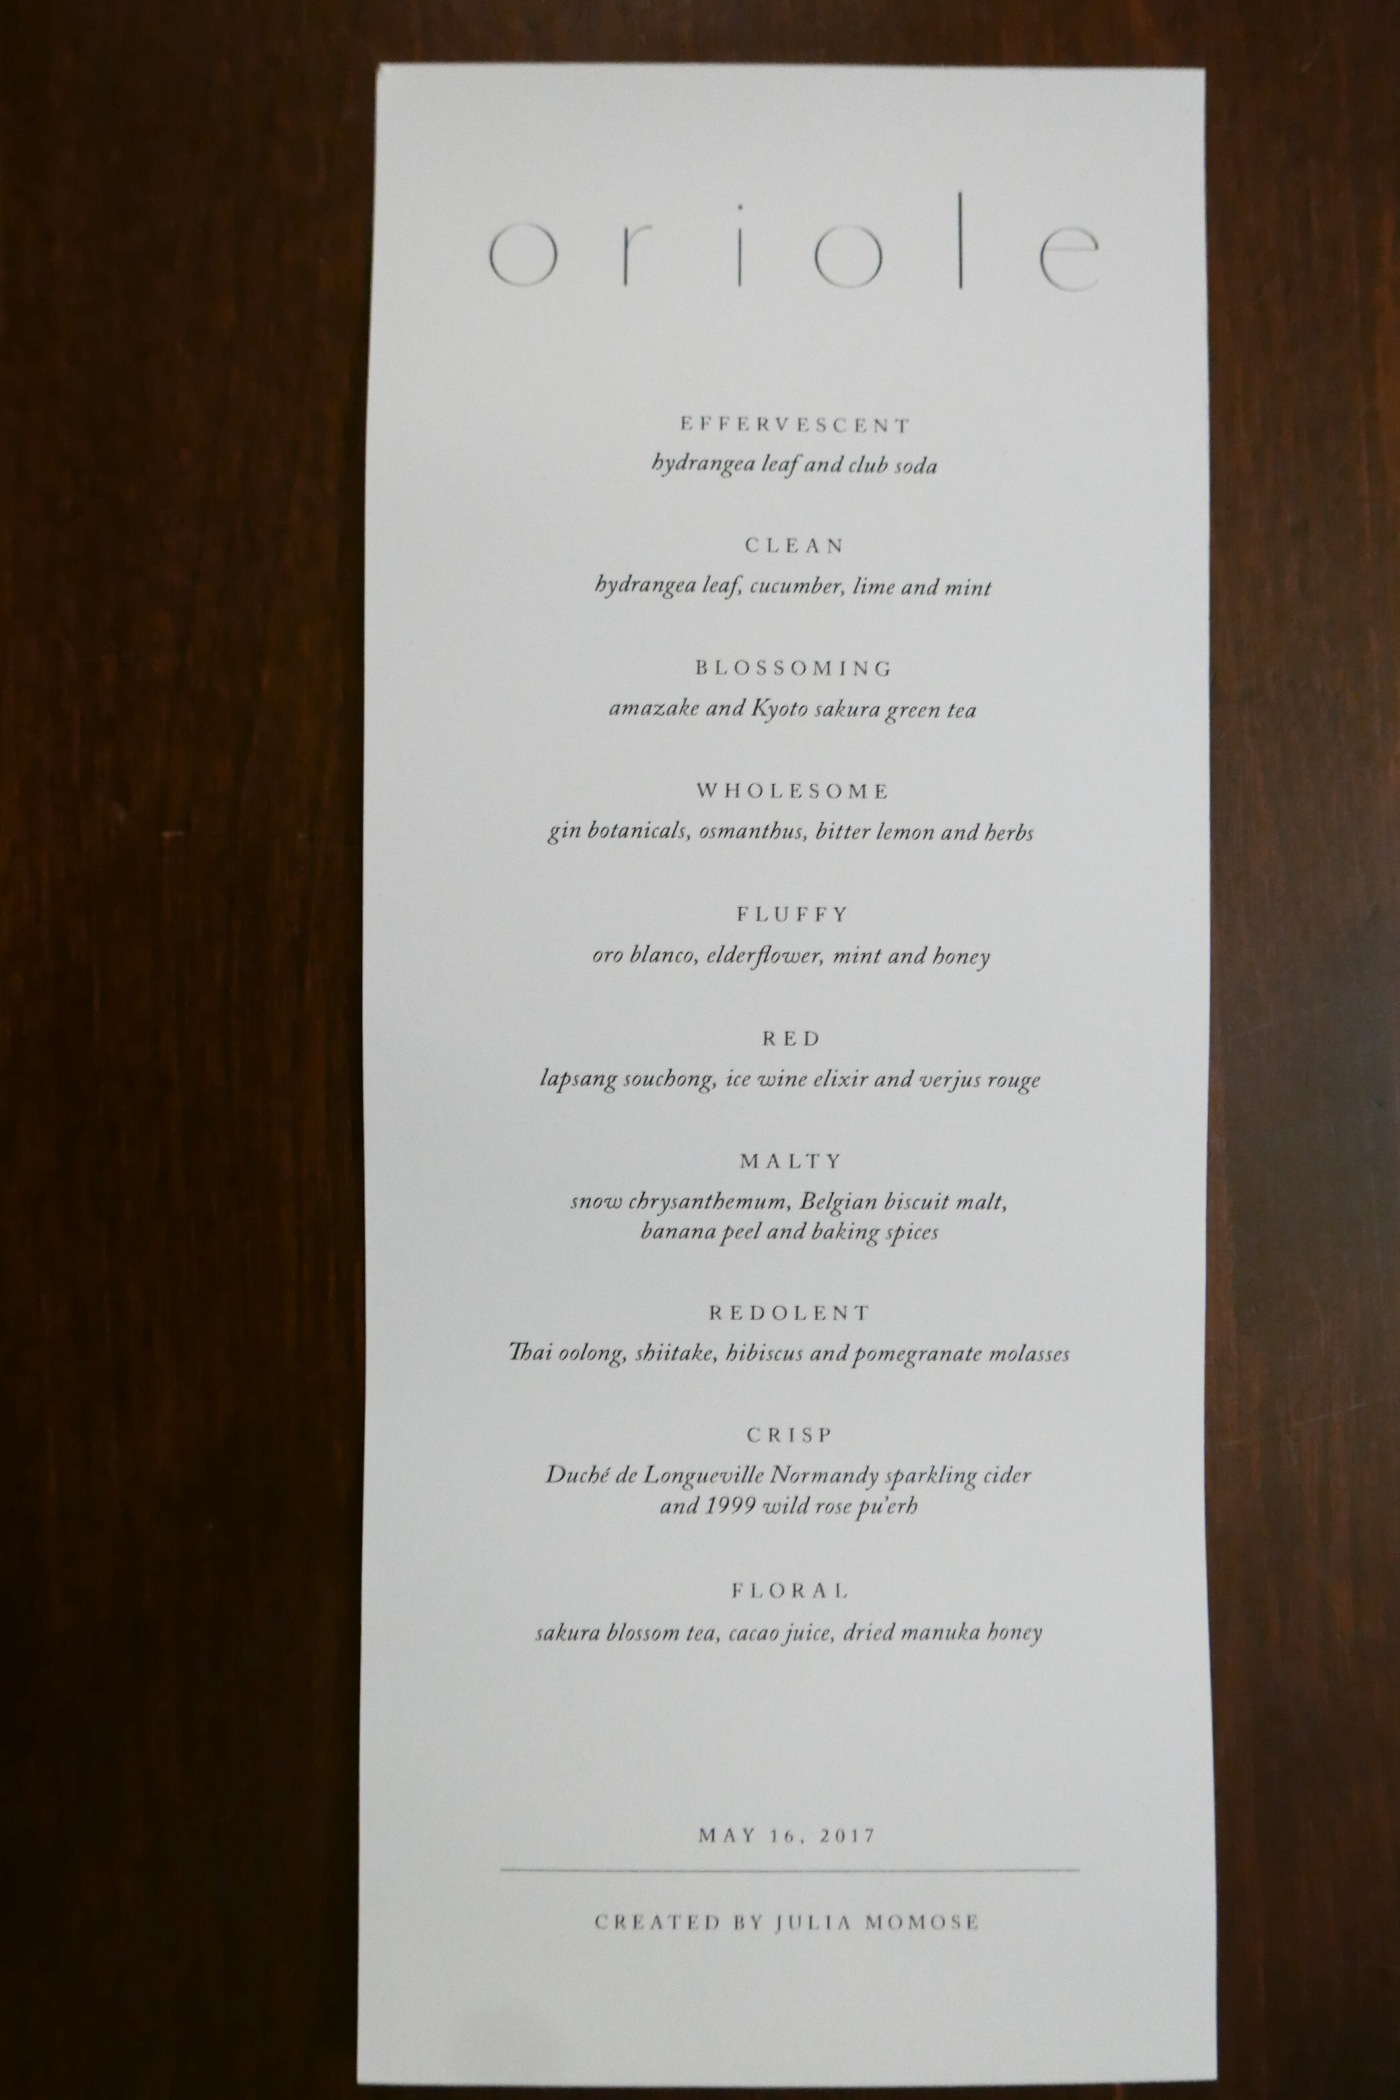 Non-alcoholic pairings at Oriole ($75)